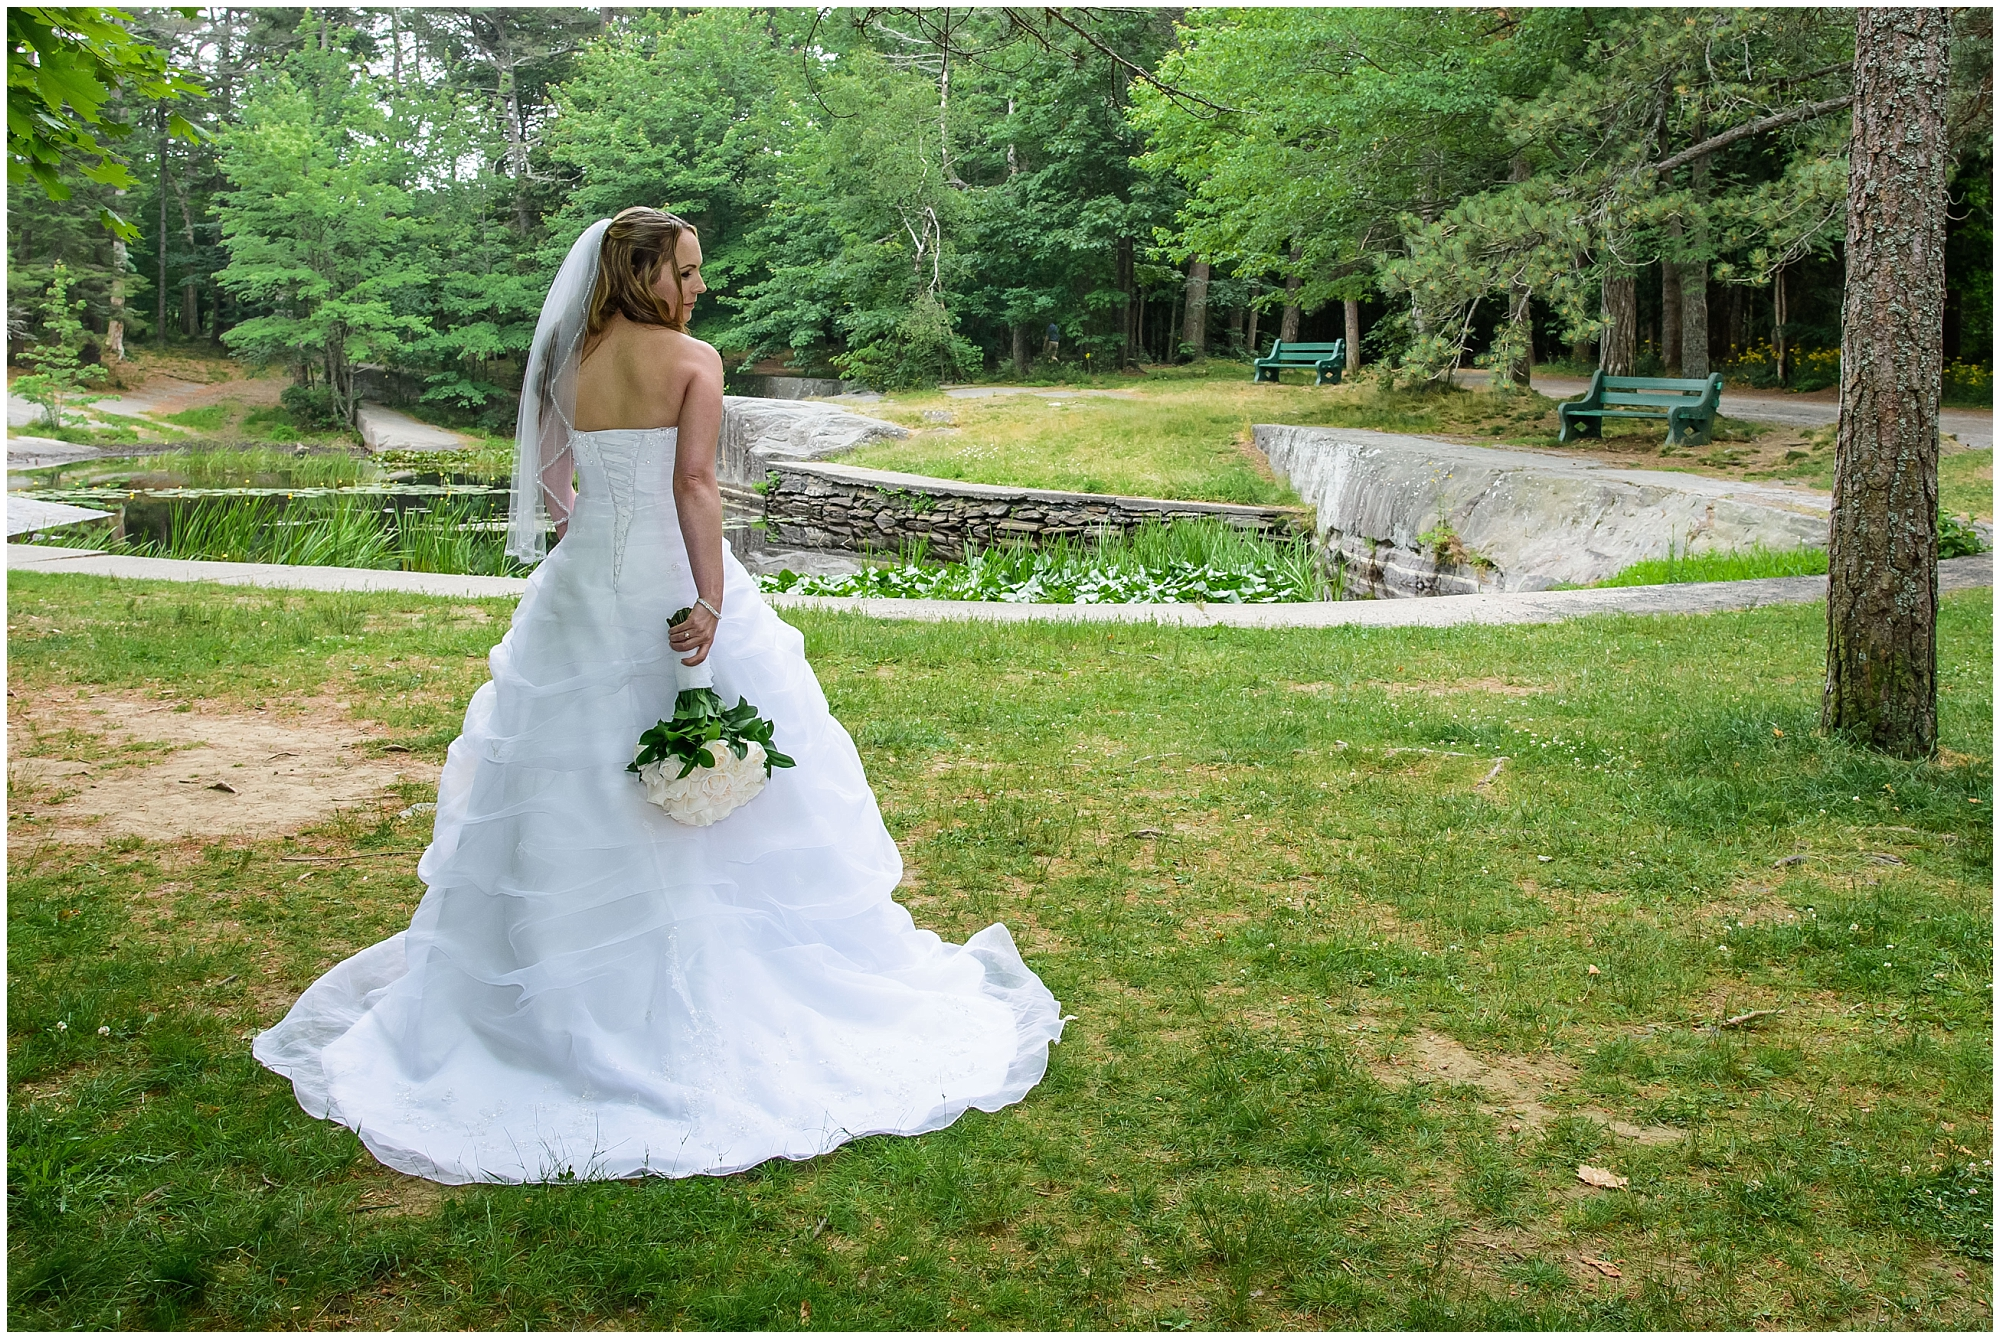 The bride posing for her wedding photos at Point Pleasant Park in Halifax, NS.